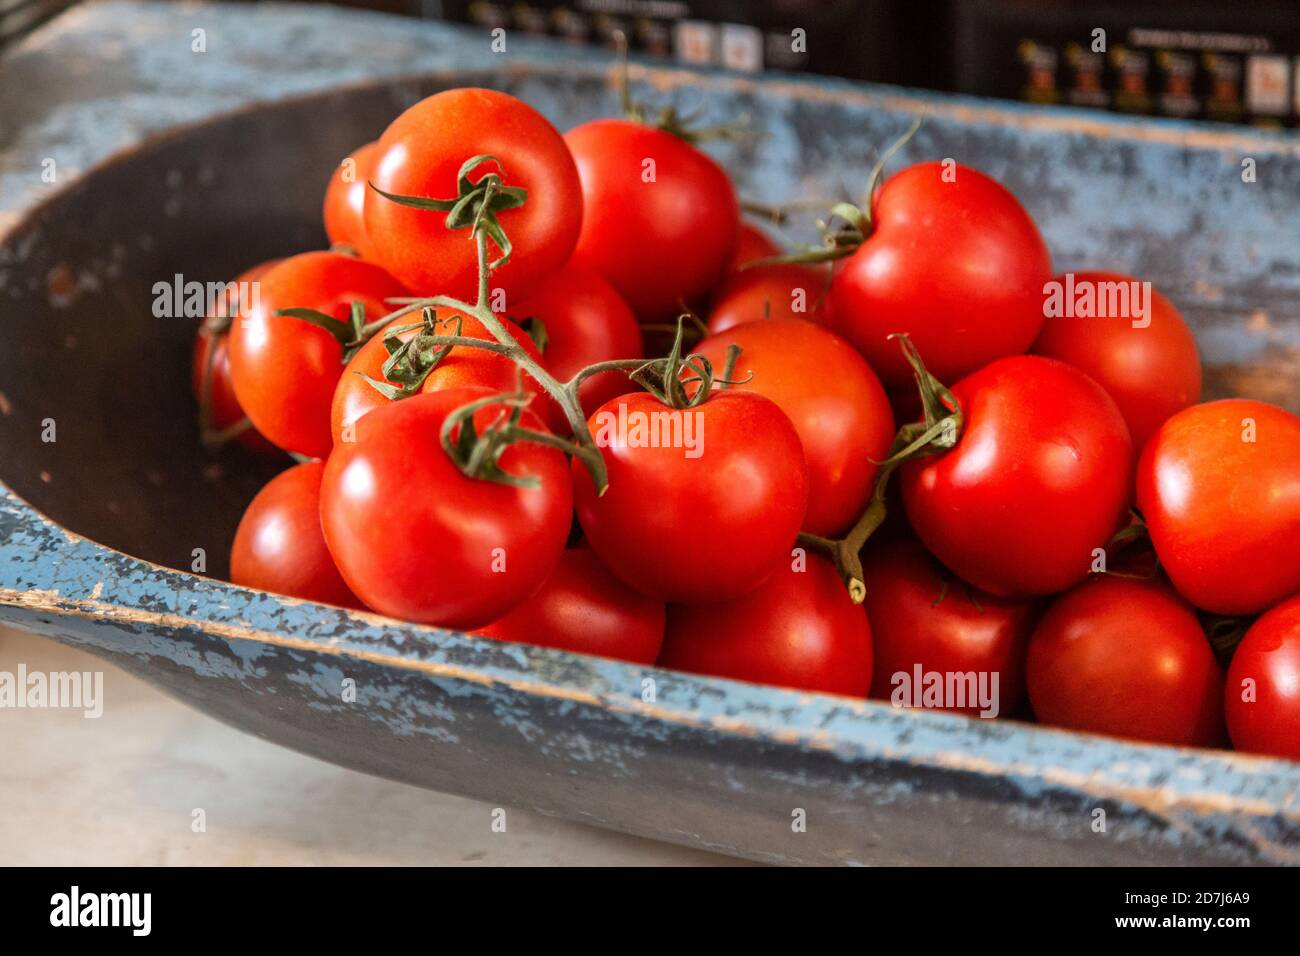 Freshly picked tomatoes in a painted wooden bowl Stock Photo